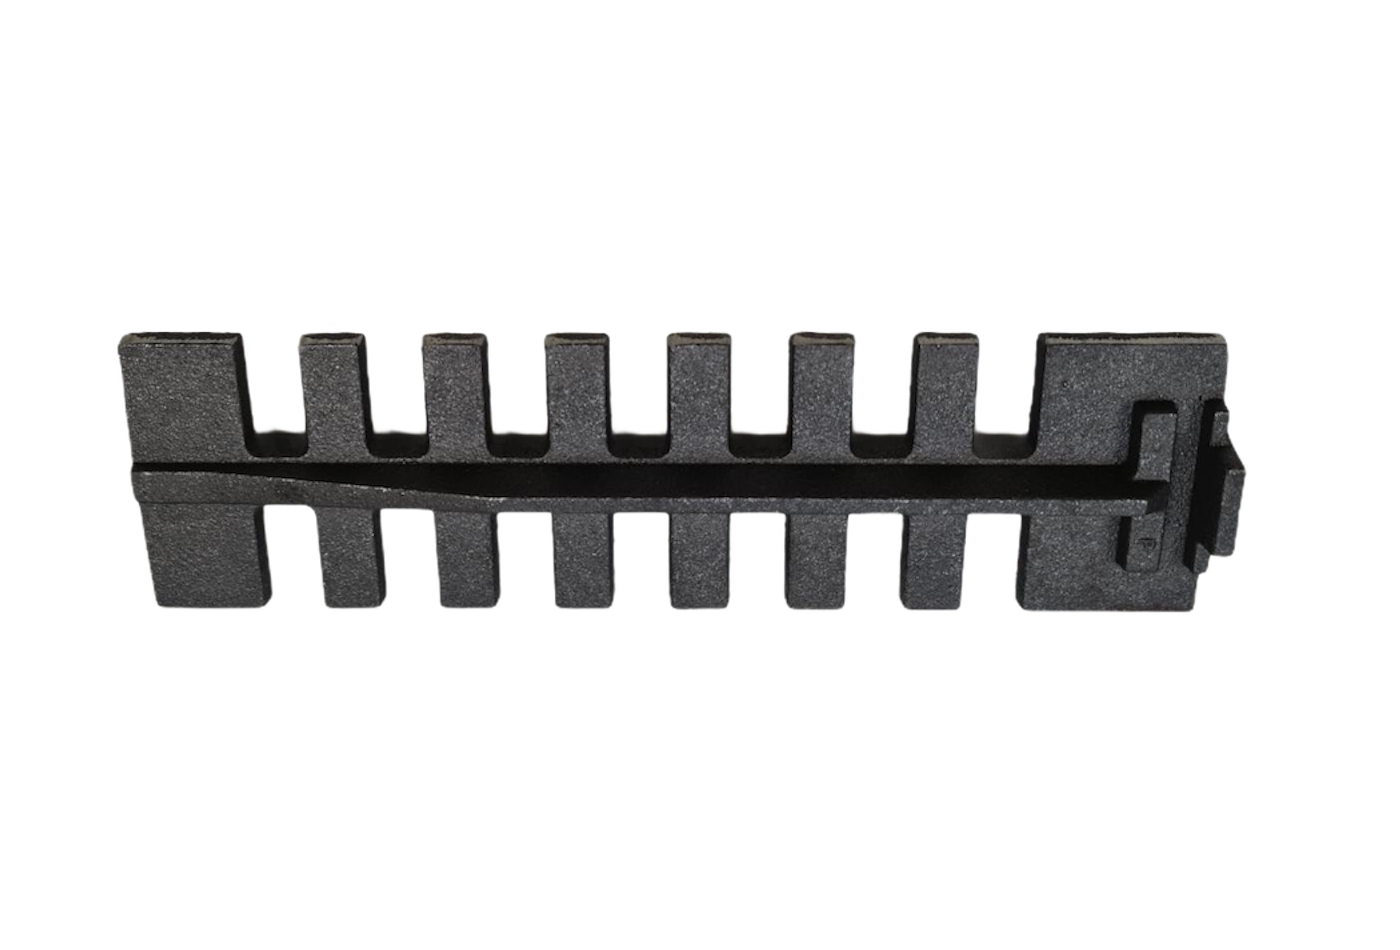 Dunsley Highlander 10 Lower Grate Bar